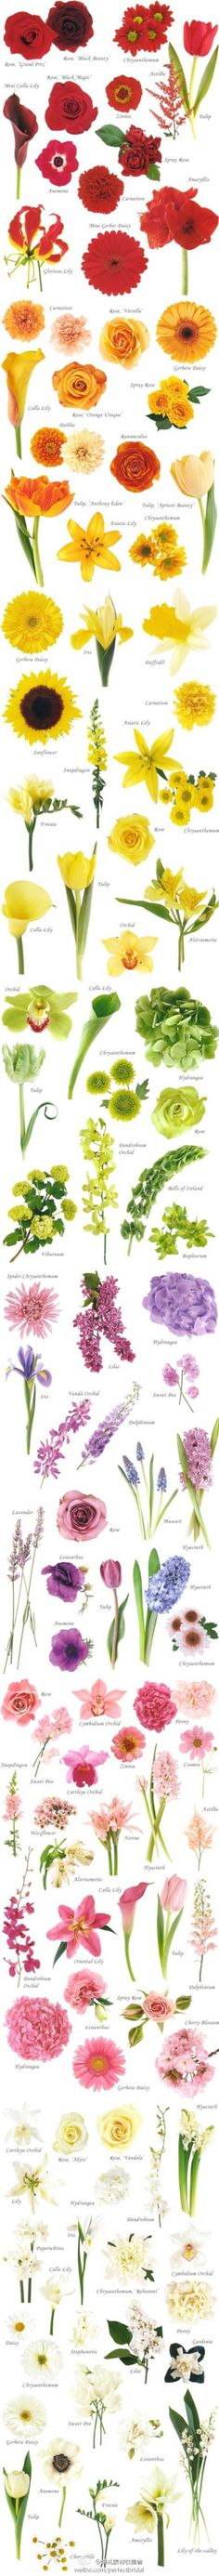 Every future #bride can appreciate this color-coded #flower glossary. Be sure to review & select your favorites before meeting with your florist!